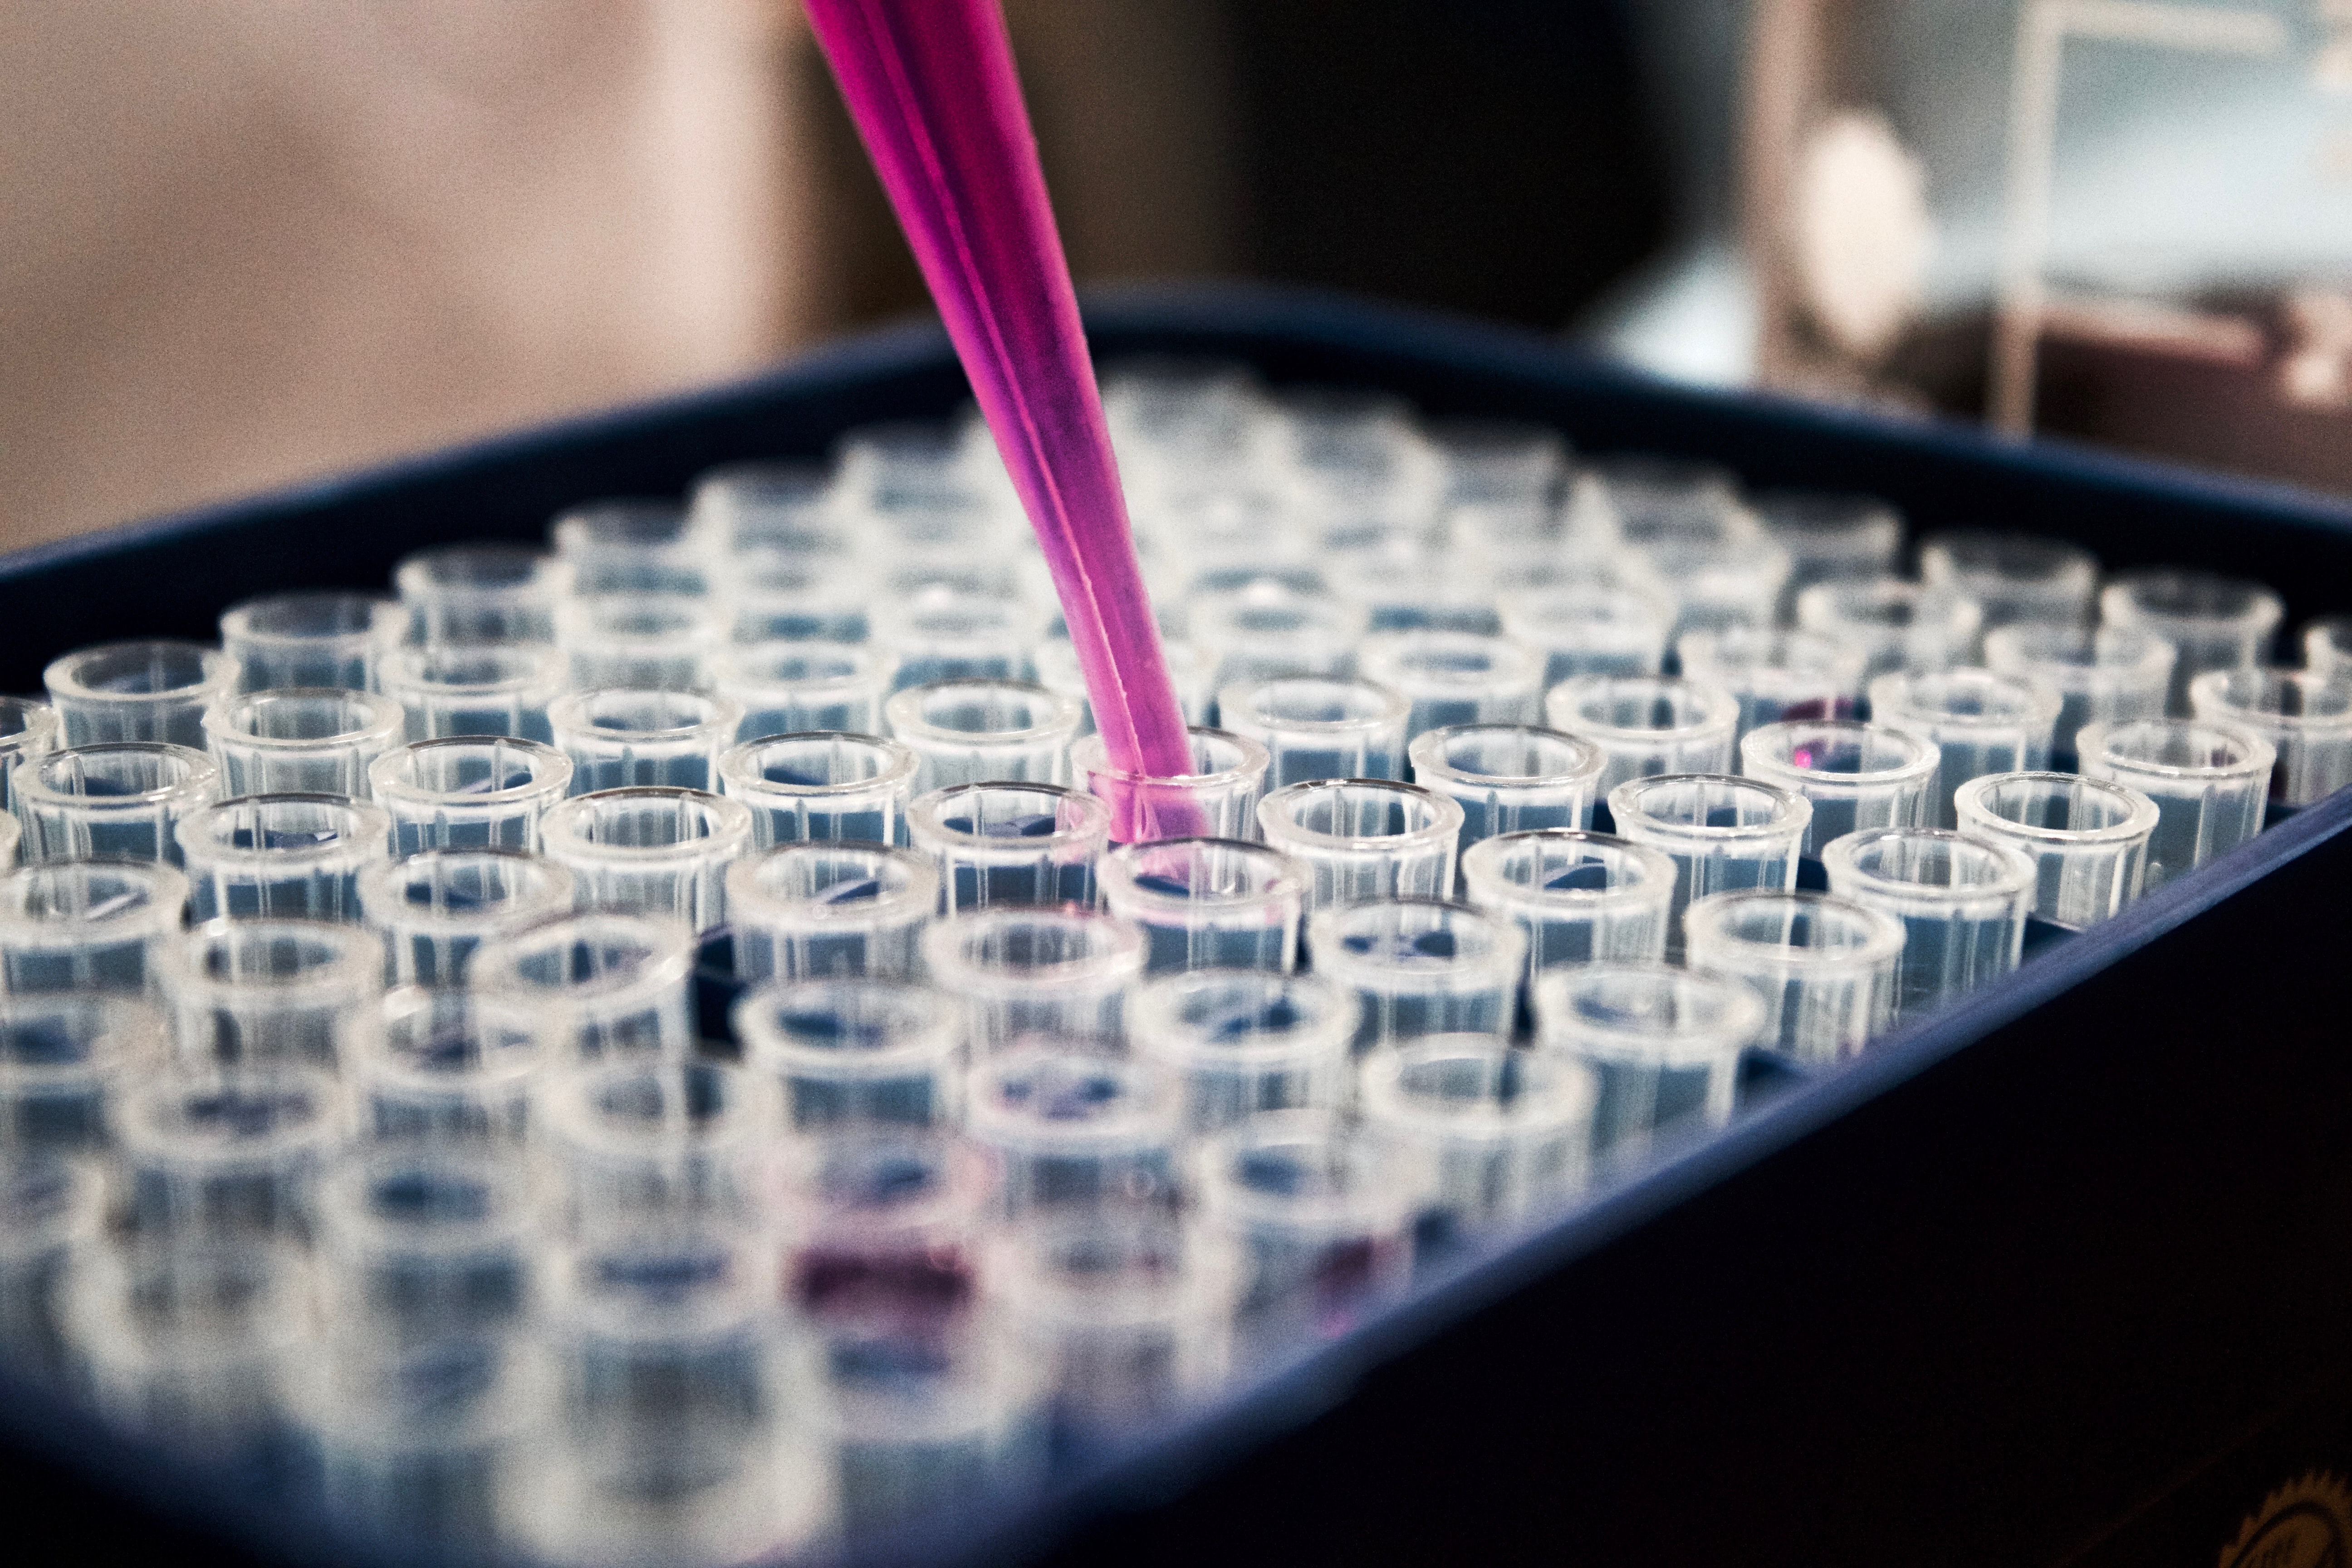 A pink pipette squeezes a liquid into one of a bunch of clear vials.